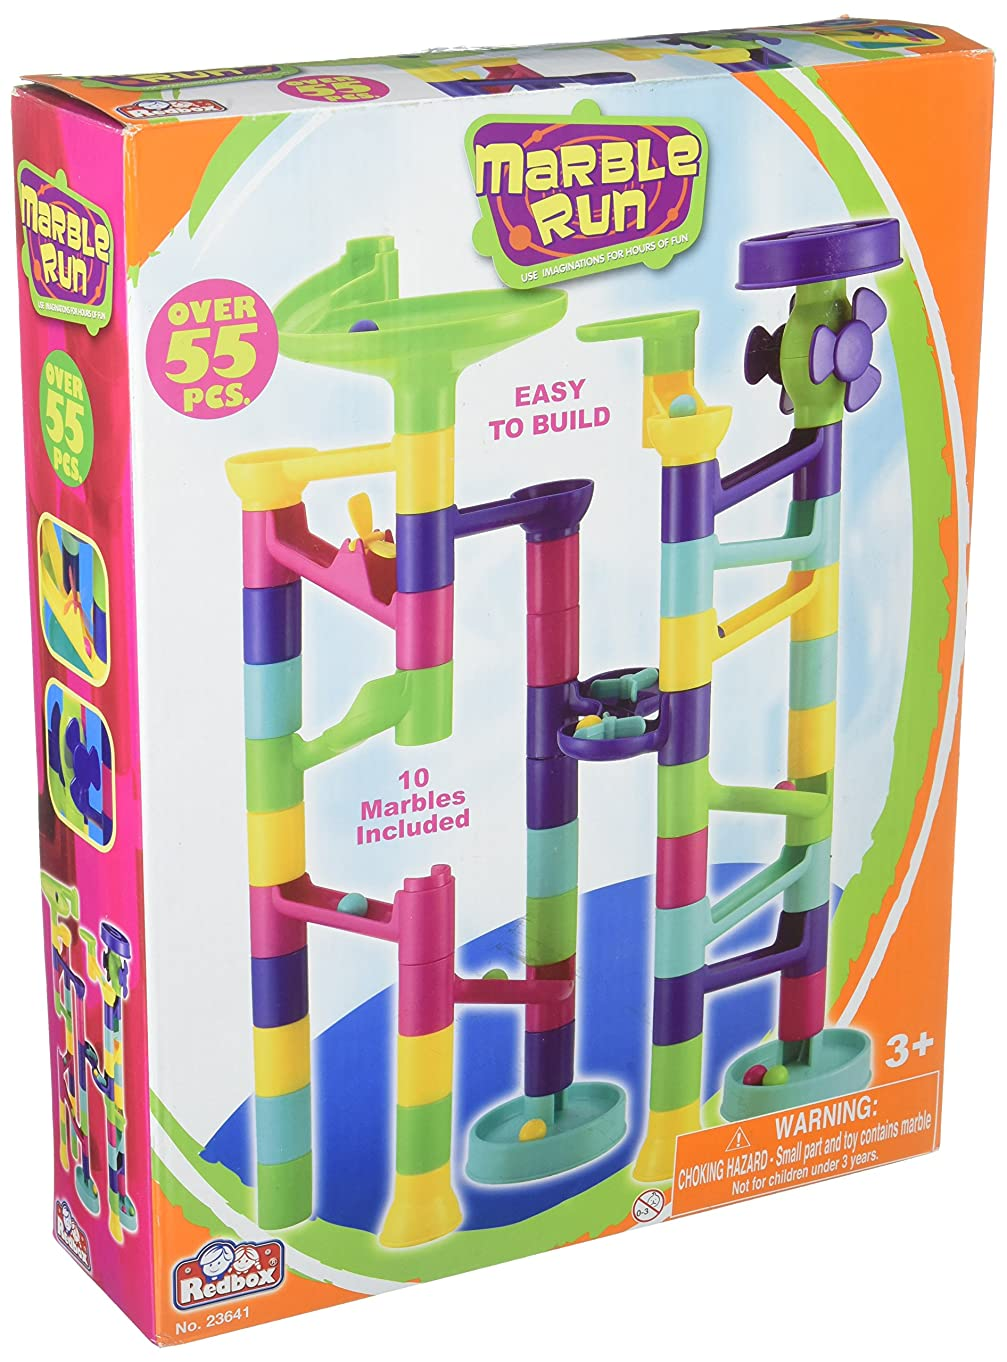 Castle Toy Marble Run Play Set